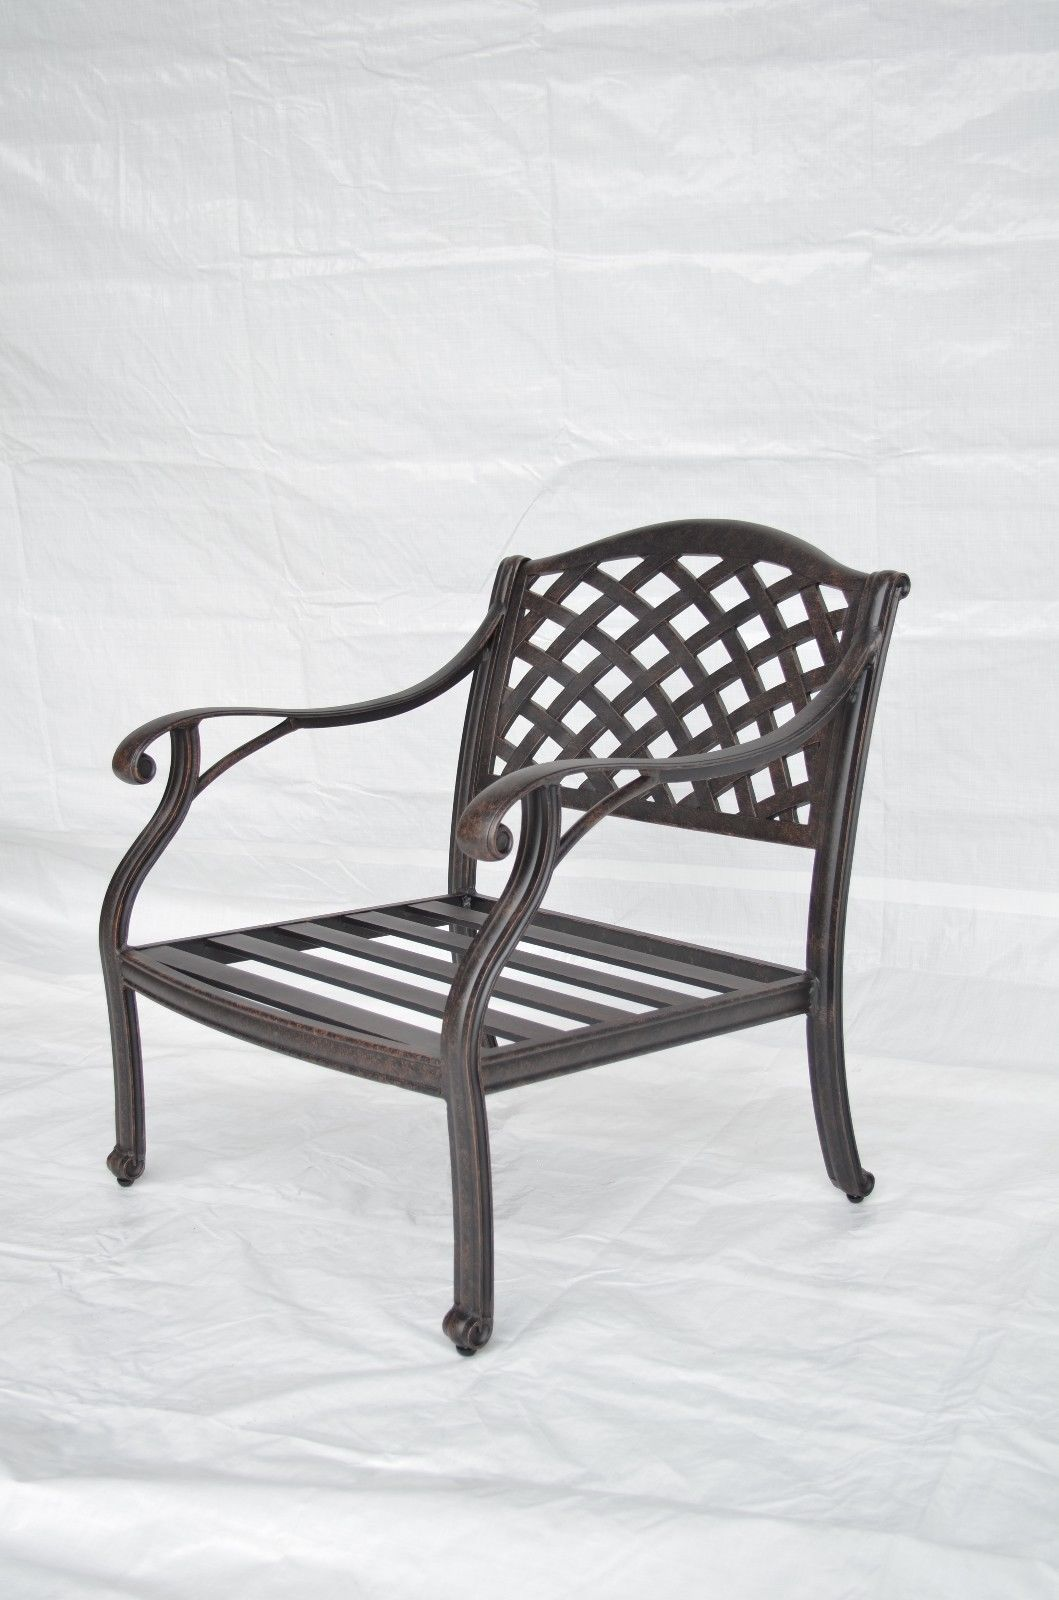 club chairs and table no plumbing pedicure chair canada nassau seating group 30 in round coffee